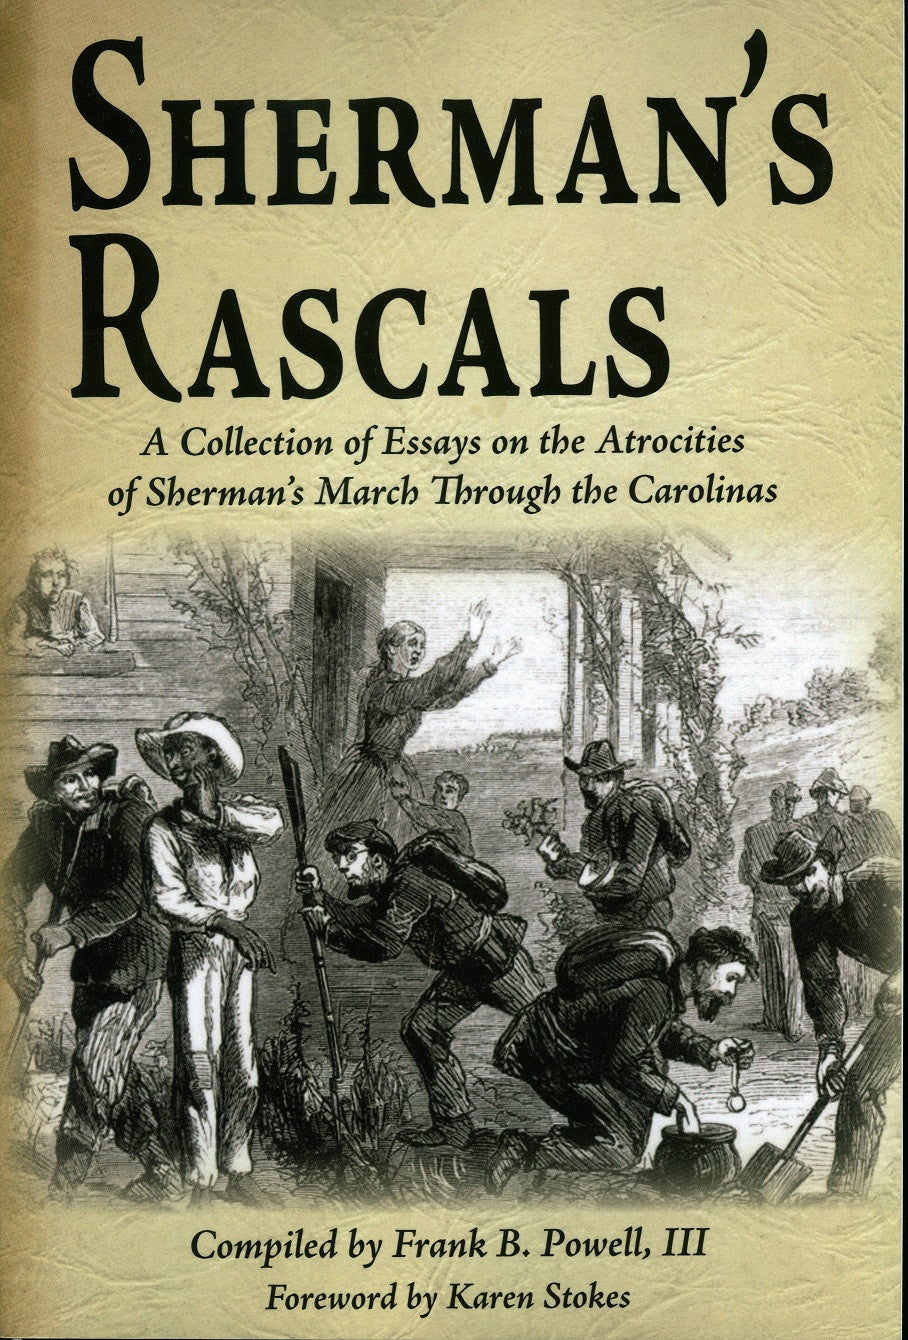 Books, Sherman's Rascals: A Collection of Essays on the Atrocities of Sherman's March Through the Carolinas